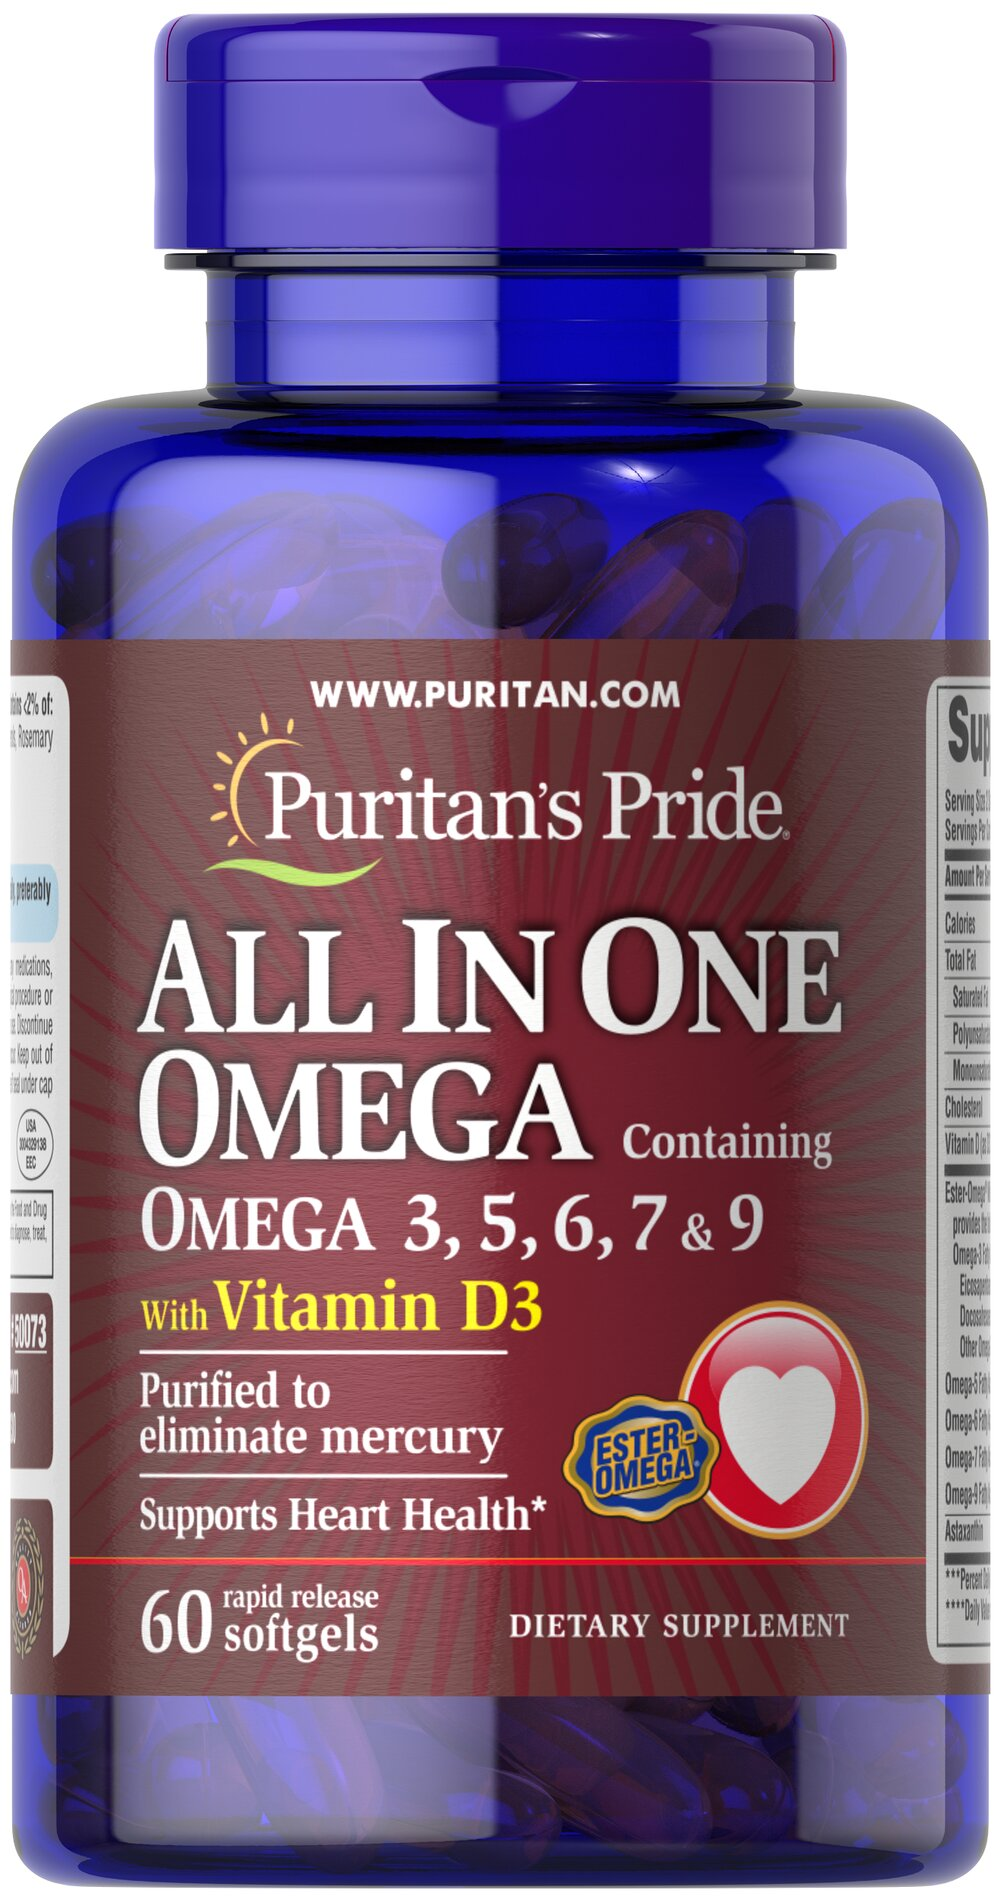 All In One Omega With Vitamin D3 60 Softgels Puritans Pride